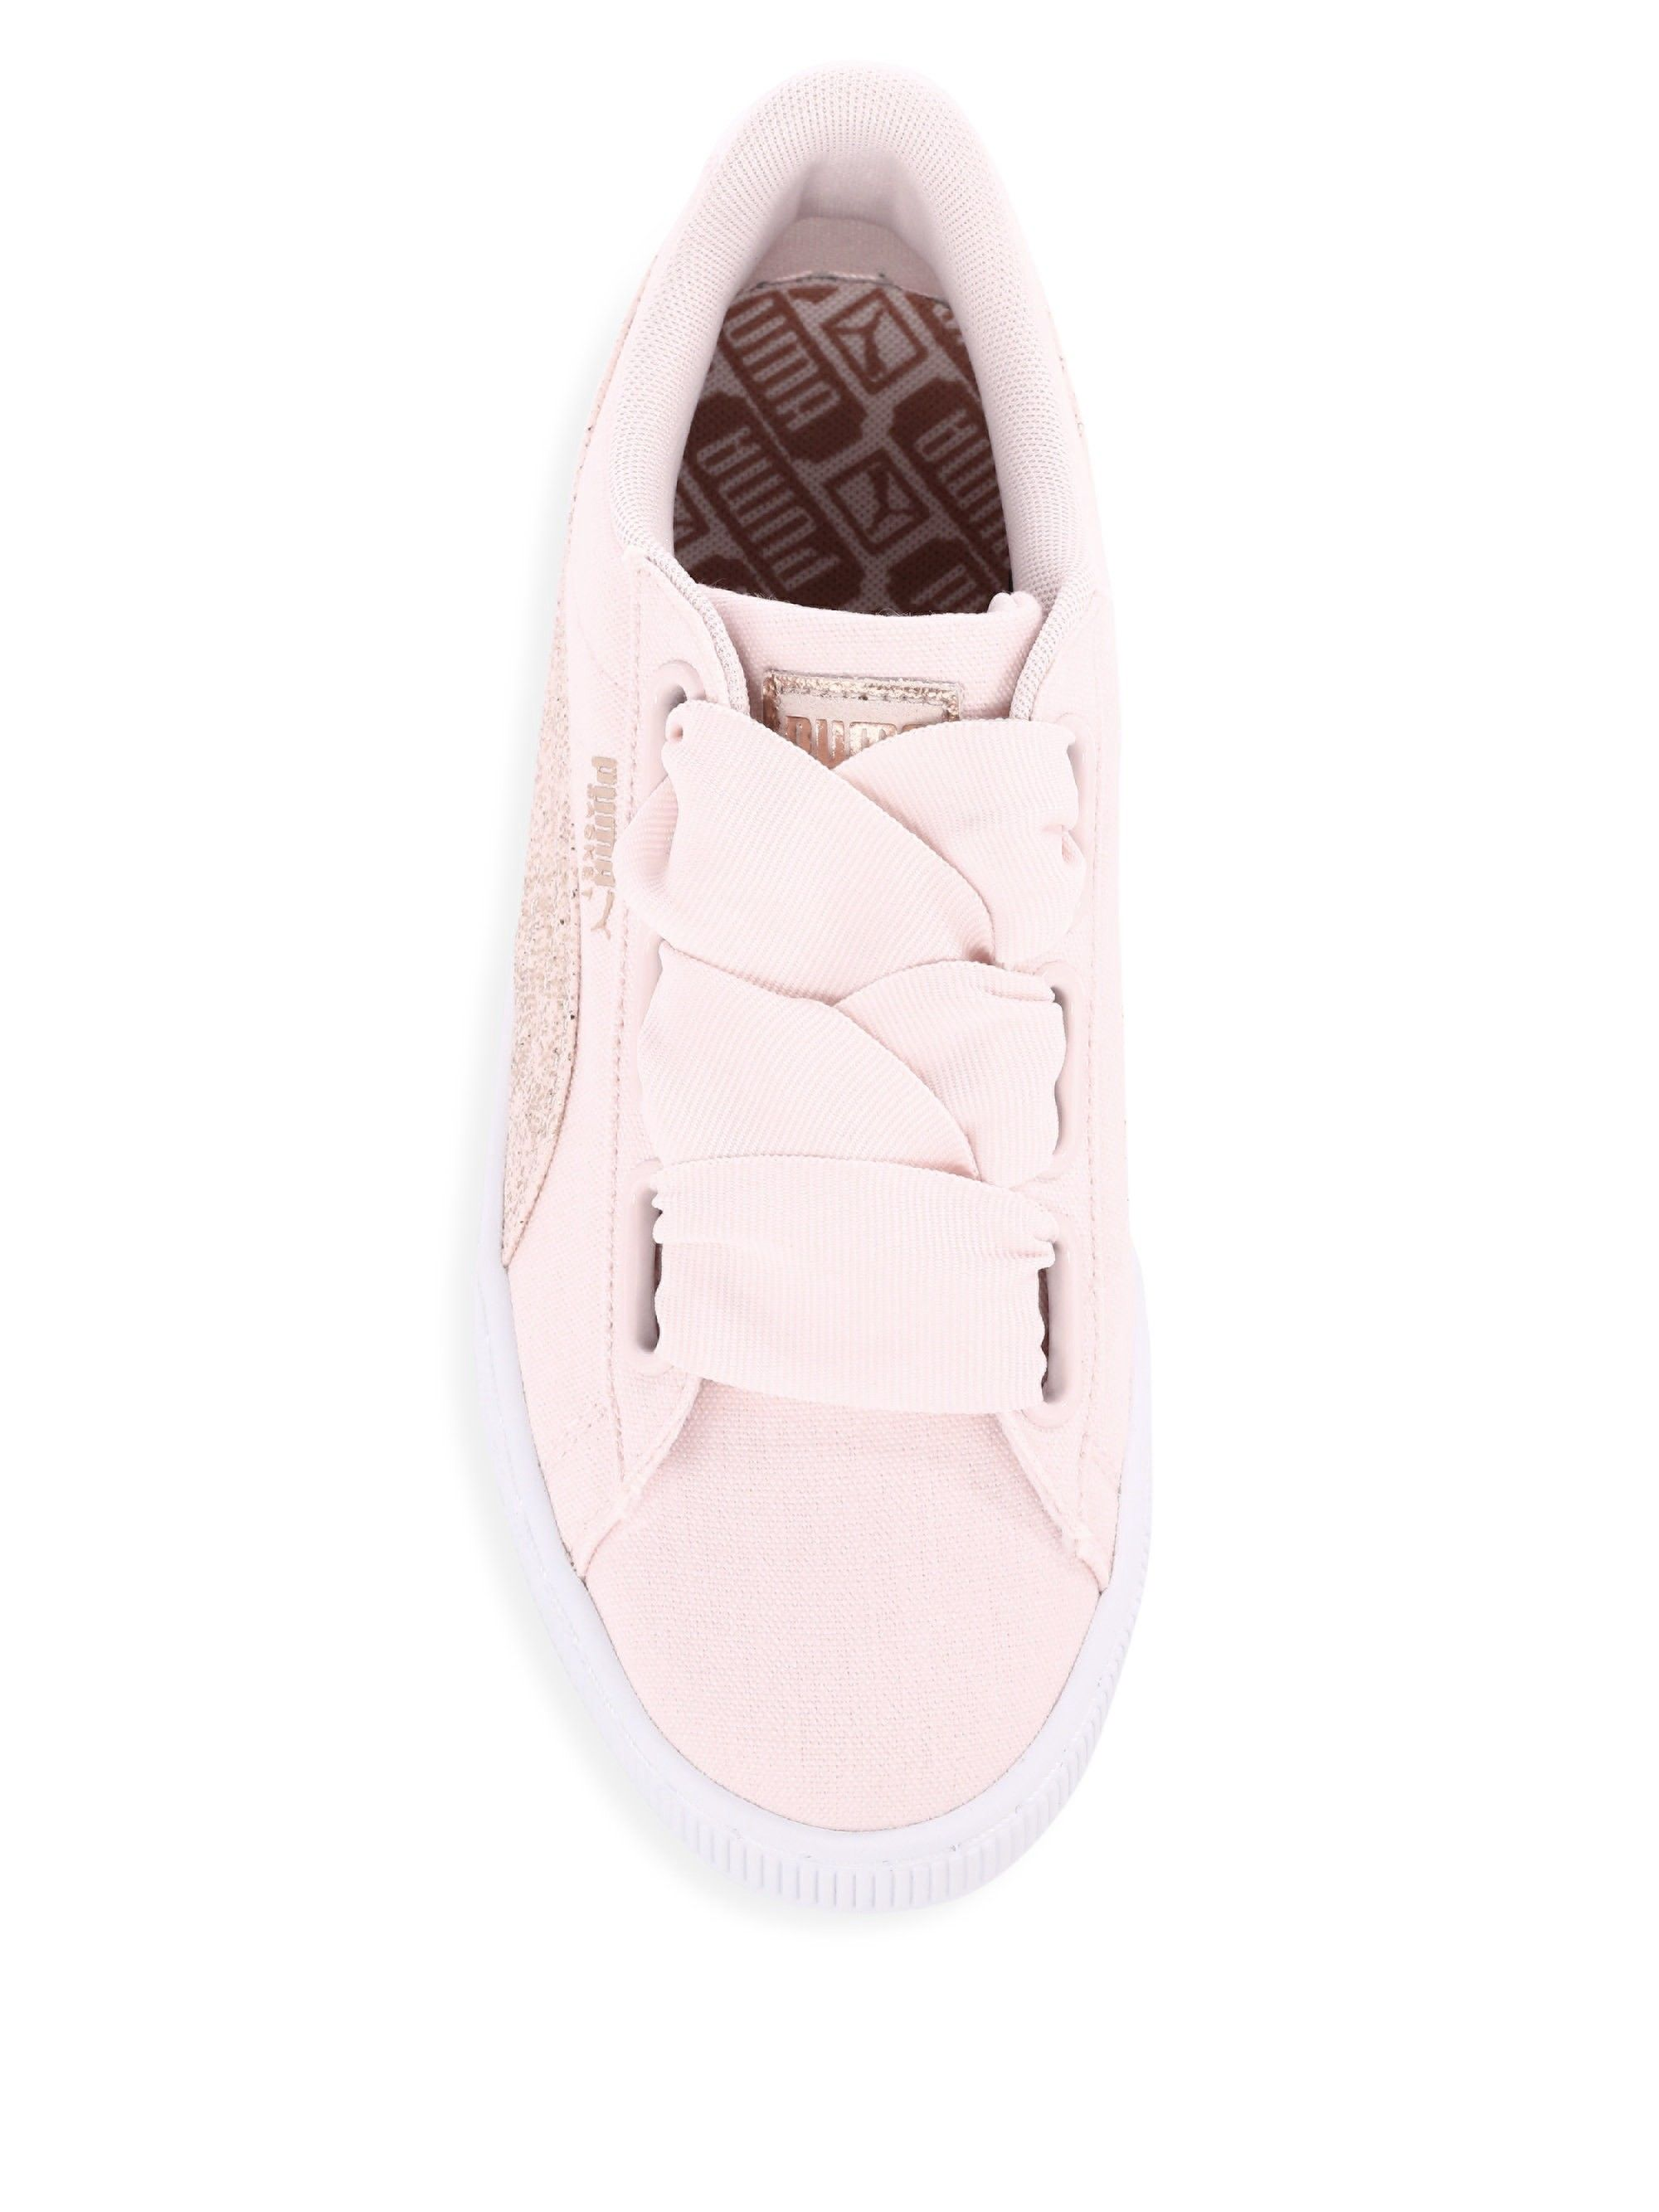 5a7c7444b1bc96 Puma Basket Heart Canvas Low-Top Sneakers - White Rose Gold 10.5